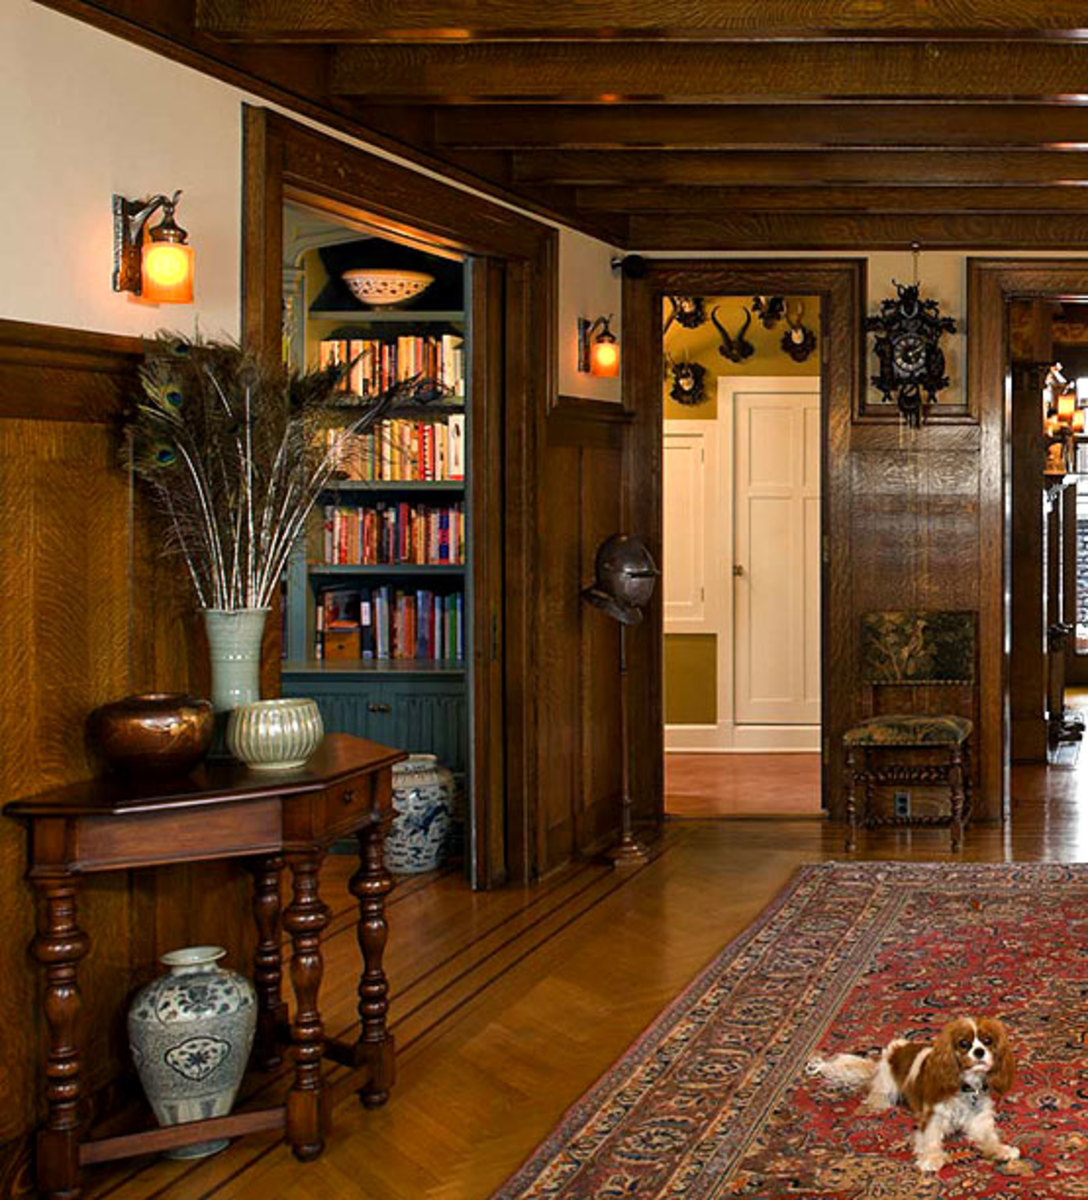 Defining a house: Original lighting with a late-medieval, Tudor Gothic look is perfectly matched to this 1908 Arts & Crafts Tudor.